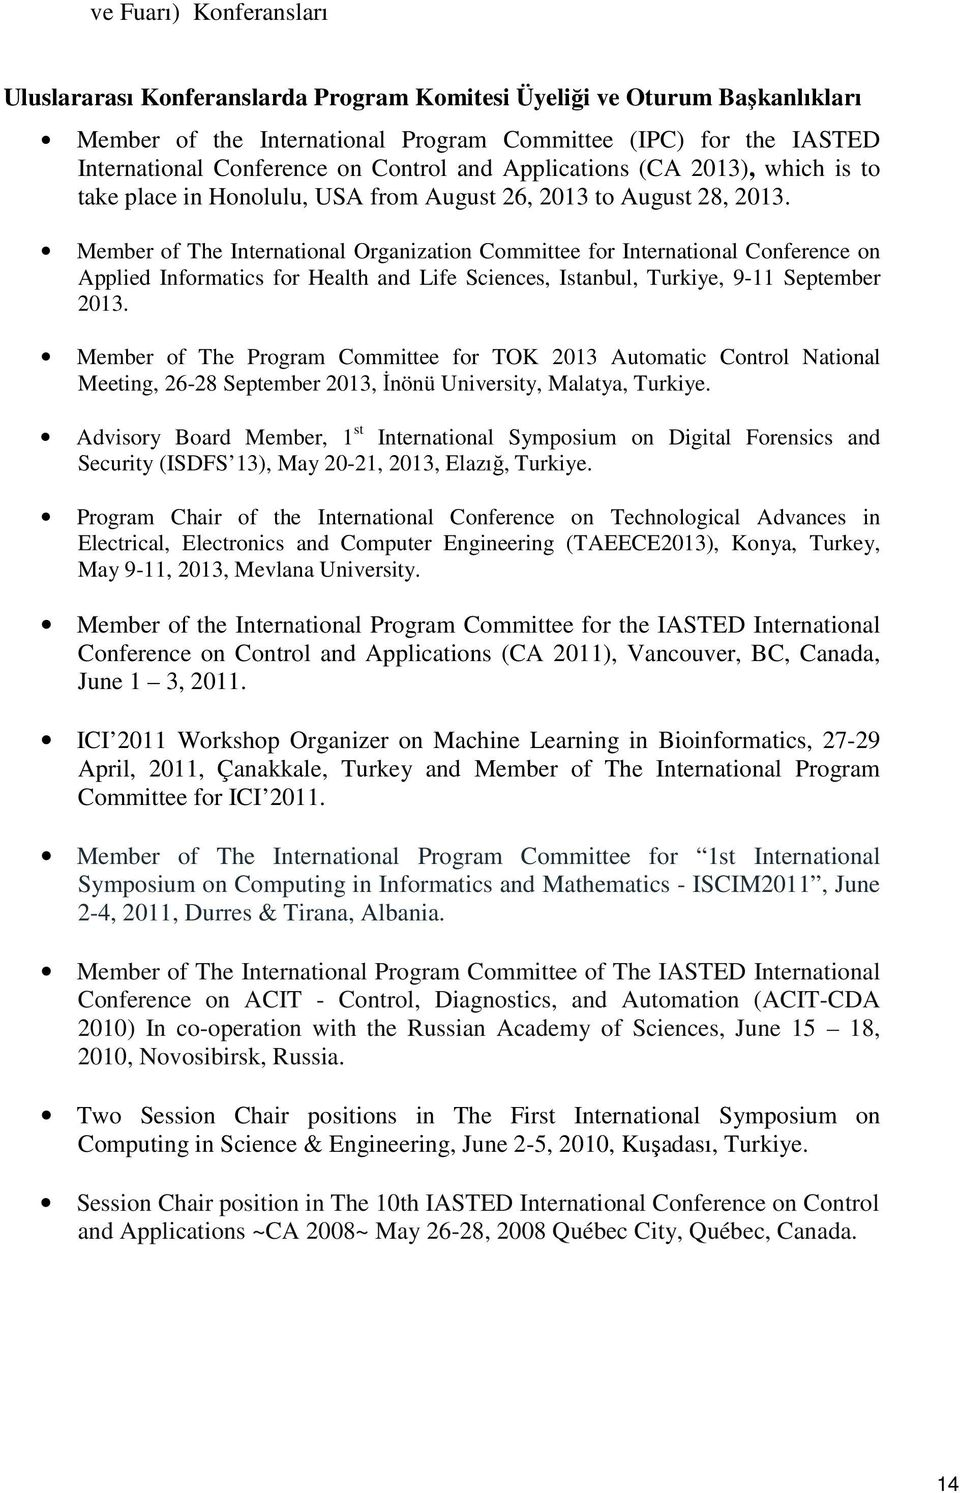 Member of The International Organization Committee for International Conference on Applied Informatics for Health and Life Sciences, Istanbul, Turkiye, 9-11 September 2013.